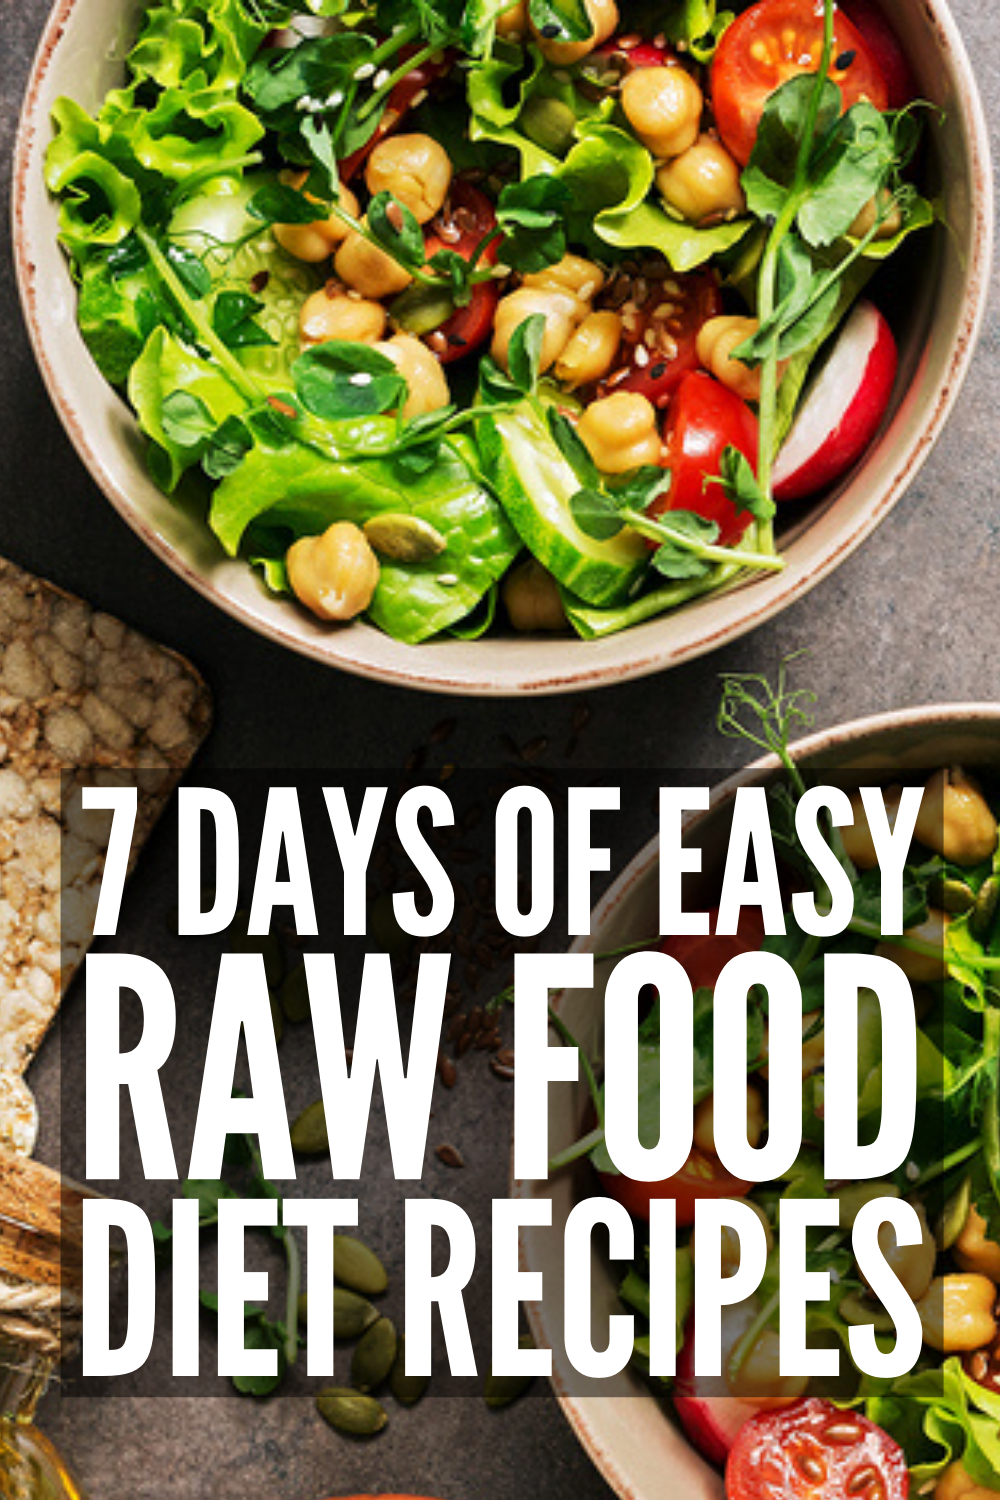 The Raw Food Diet: 7-Day Meal Plan For Beginners